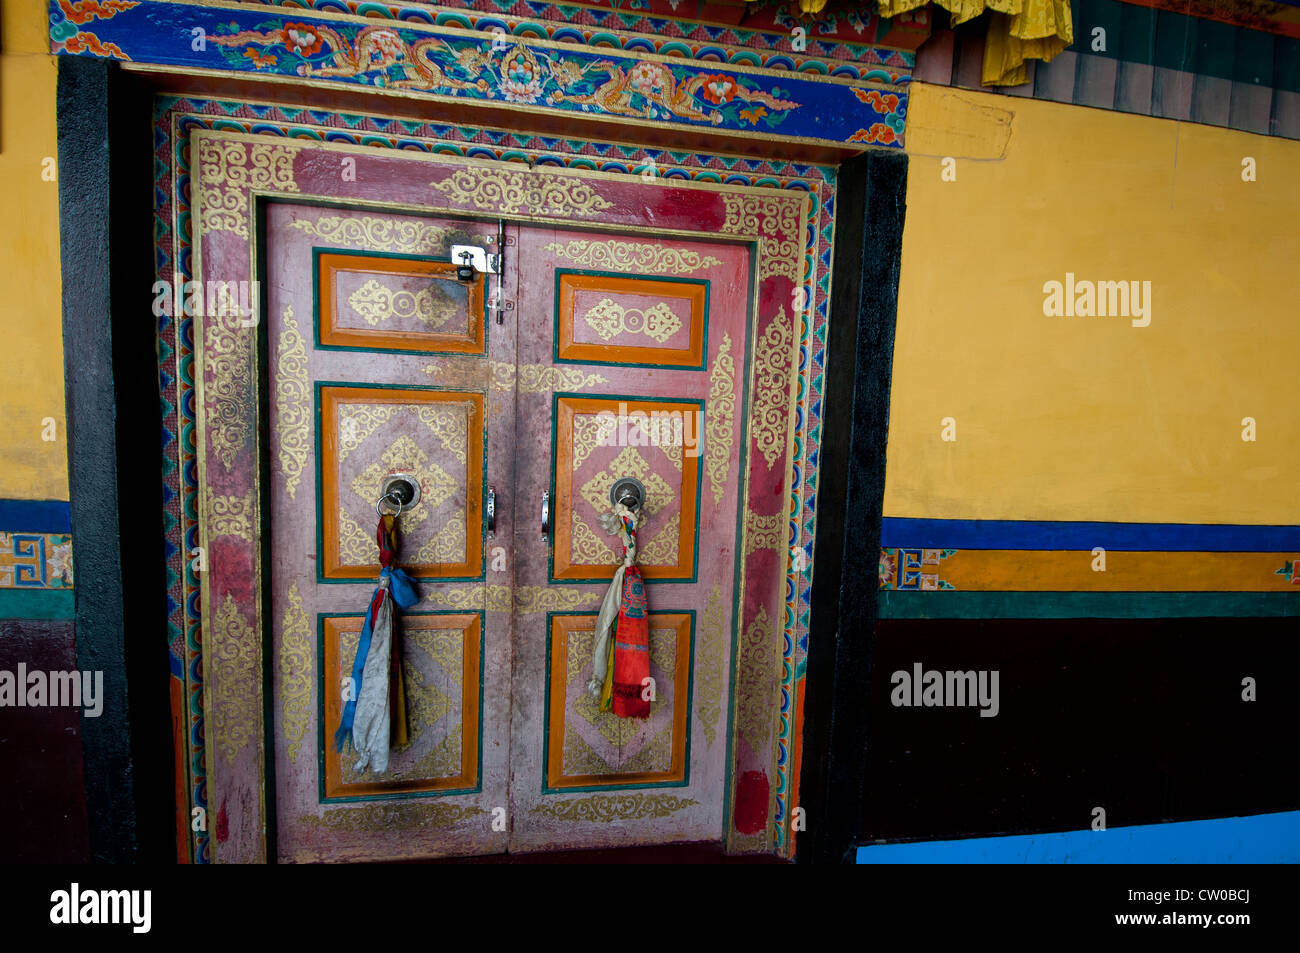 Colorfully painted door with traditional decorations at Shey Palace & Monastery near Leh, Ladakh, India. - Stock Image